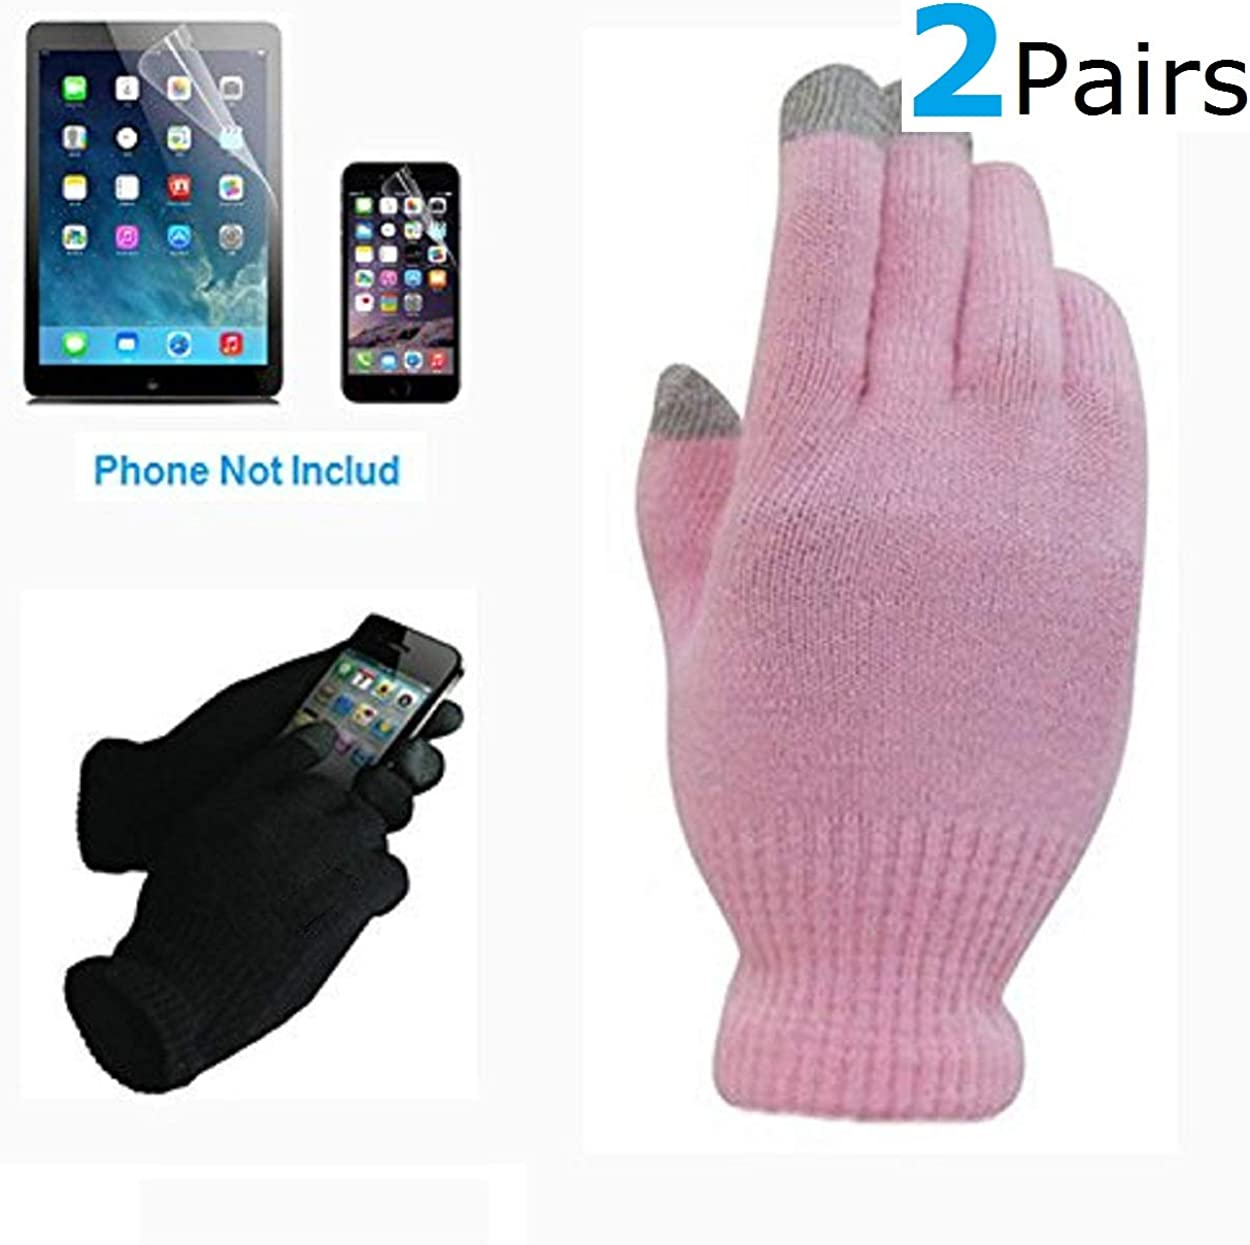 2 Pair Of Pink Touch Screen Gloves